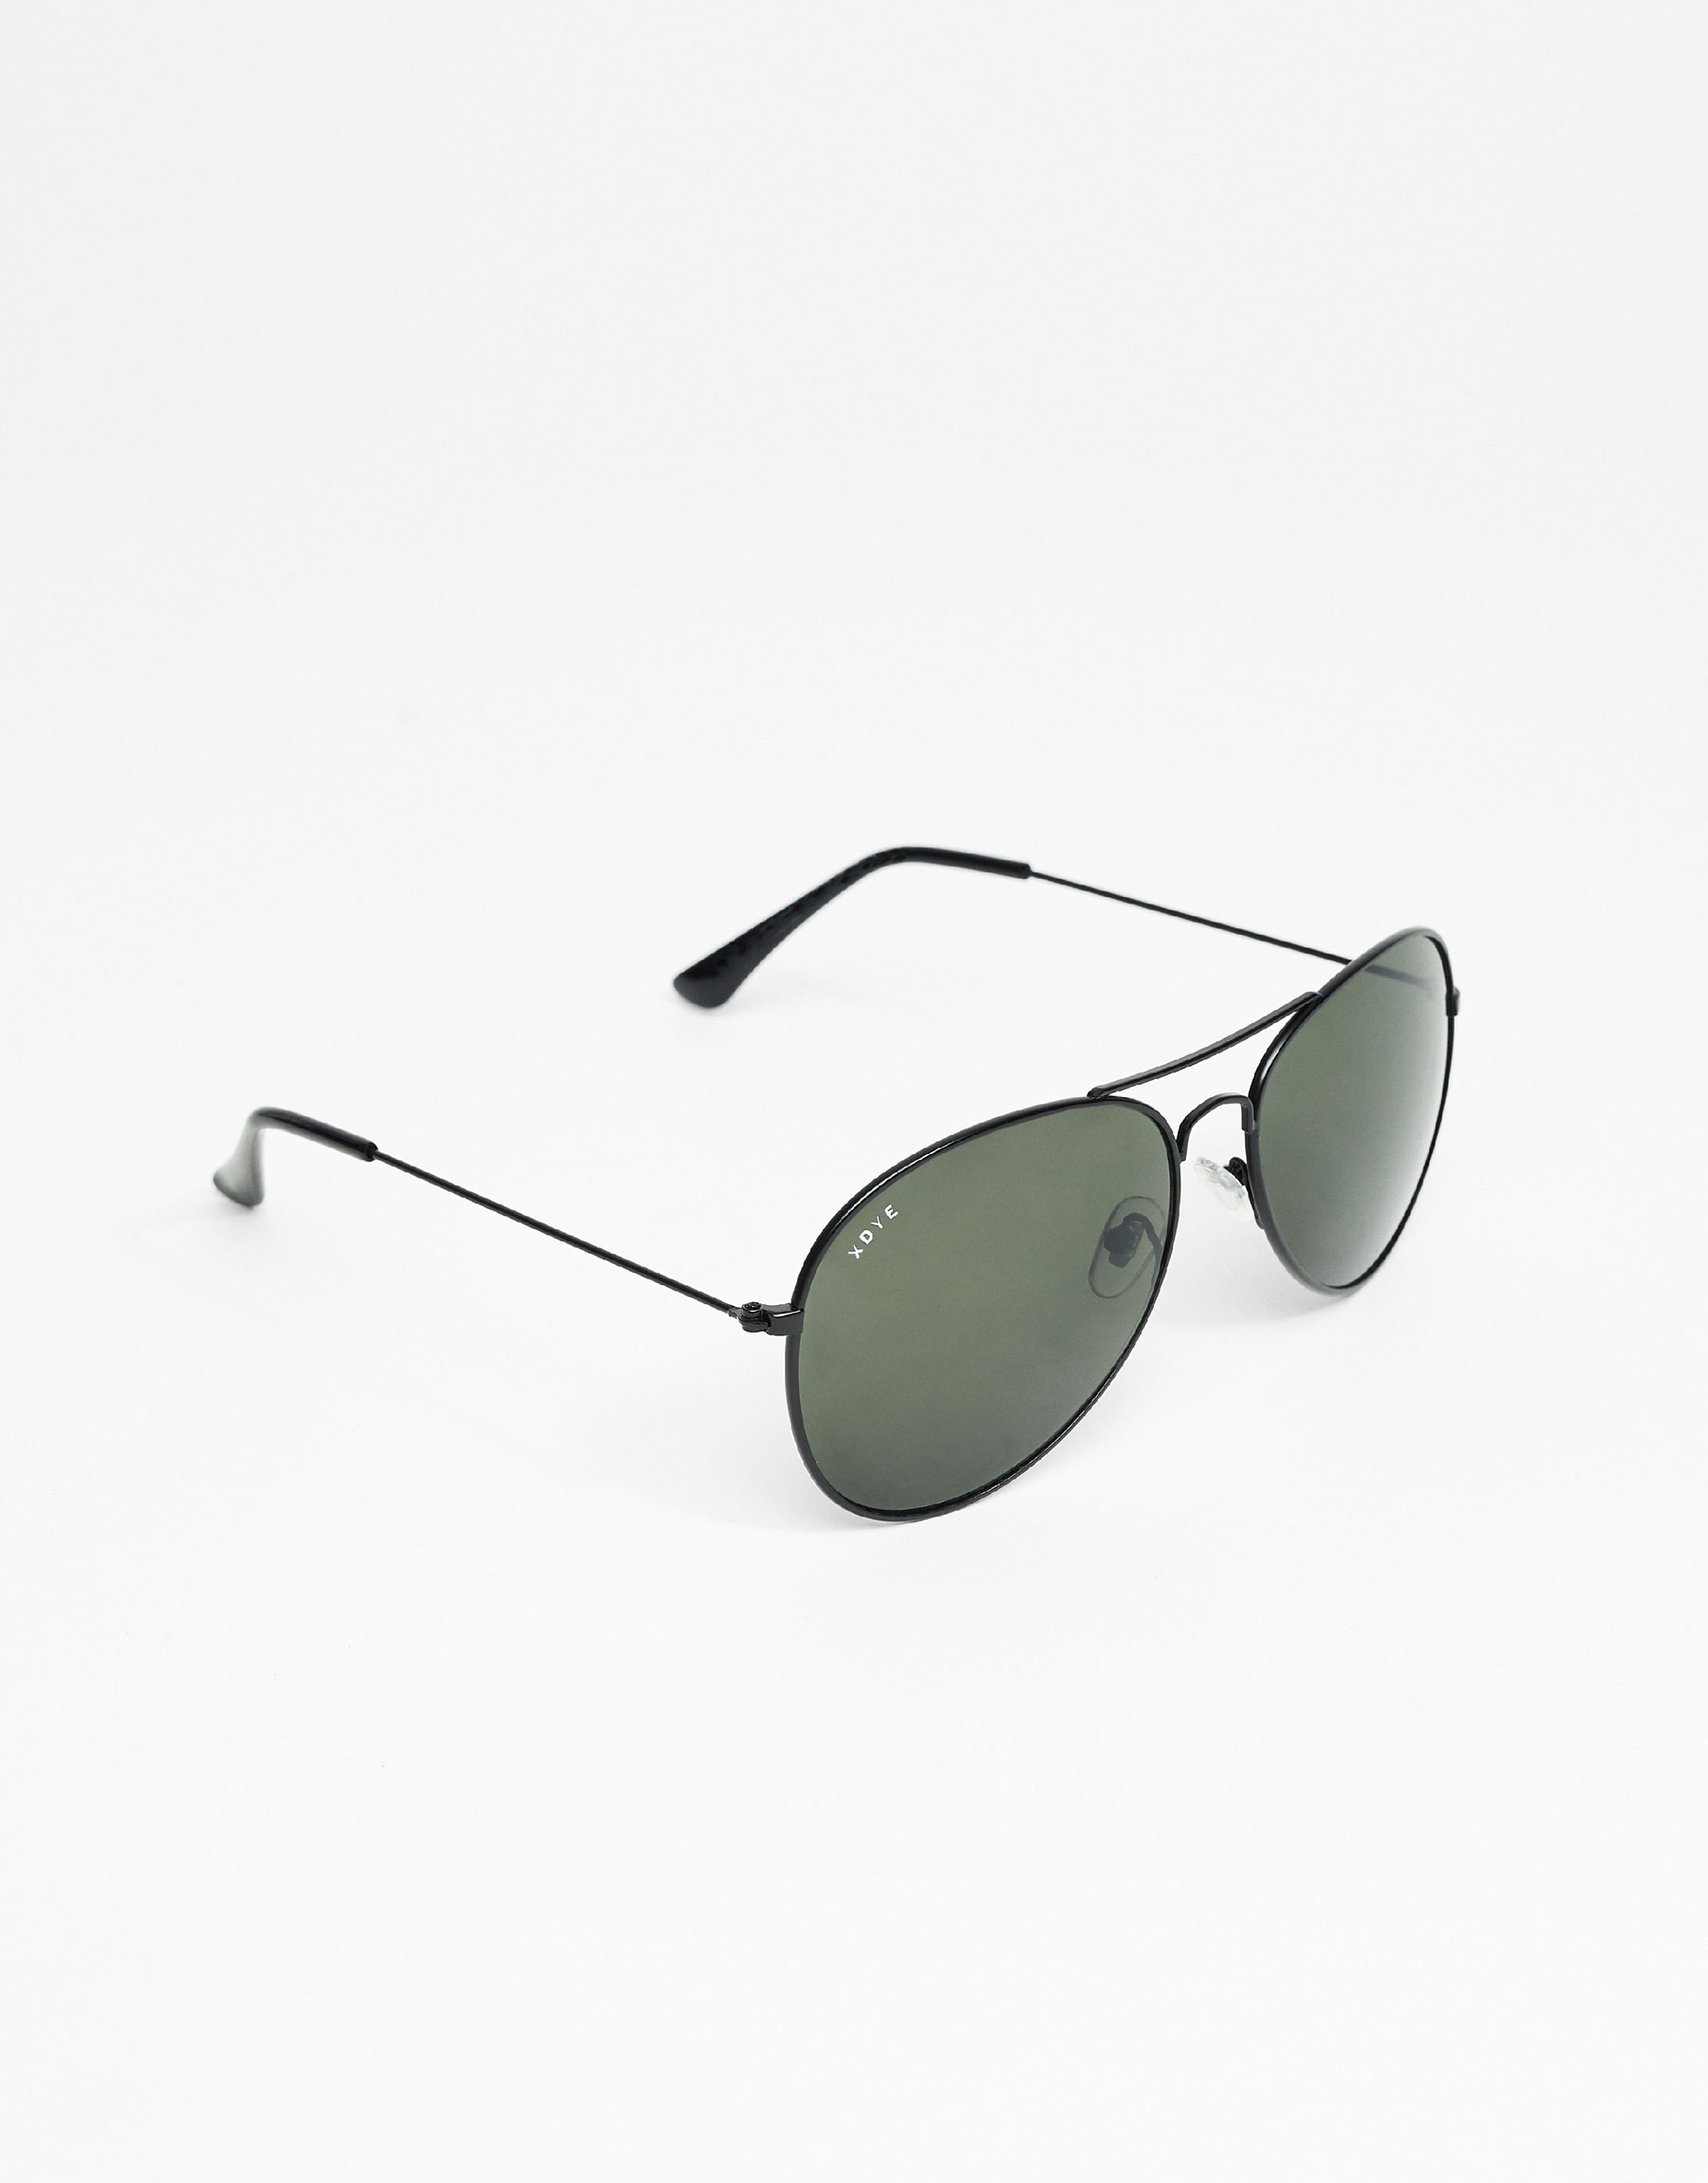 XDYE Sunglasses - Classic Airplane Black